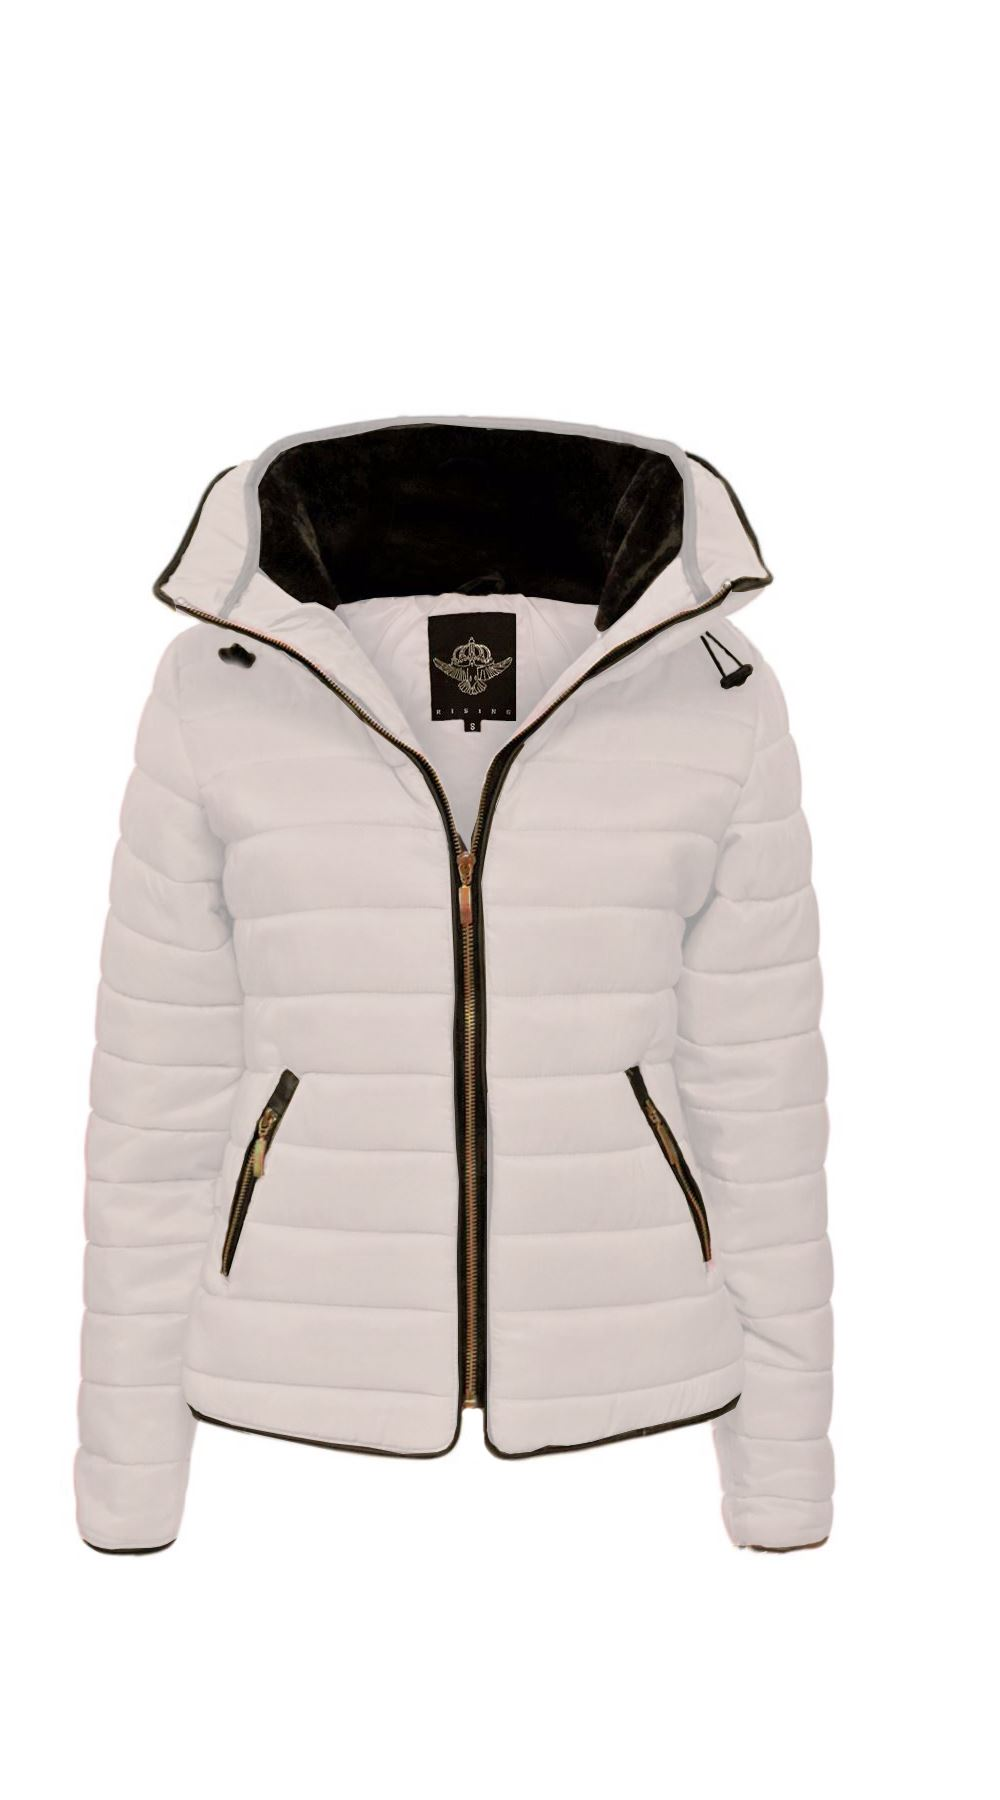 New Ladies Quilted Puffer Bubble Padded Jacket Fur Collar Gold ... : gold quilted jacket - Adamdwight.com